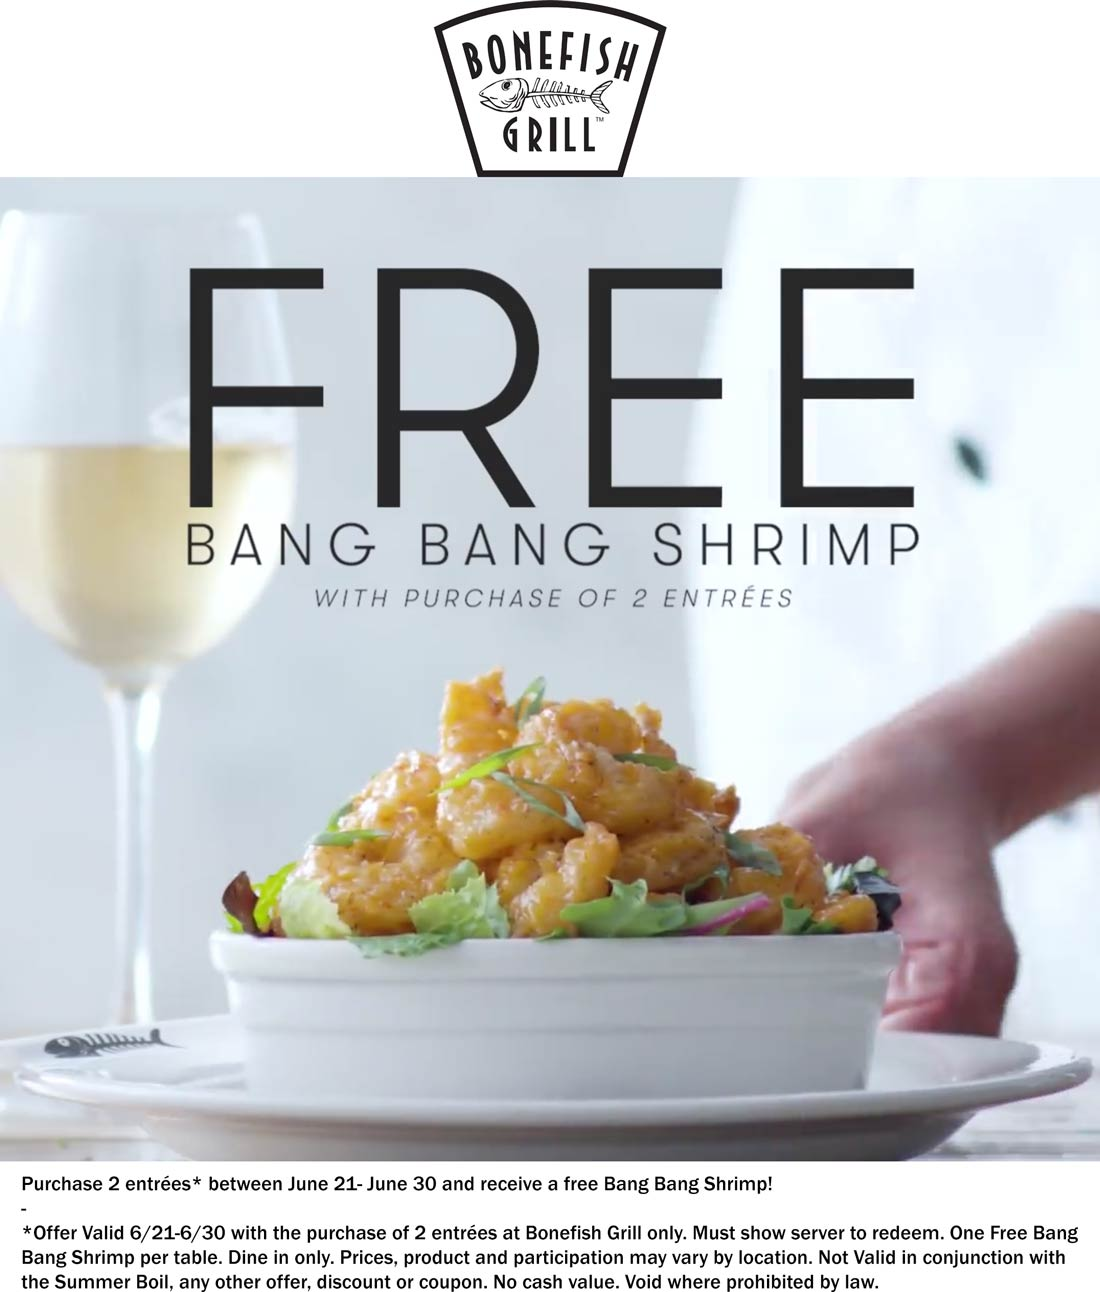 Bonefish Grill coupons & promo code for [November 2020]